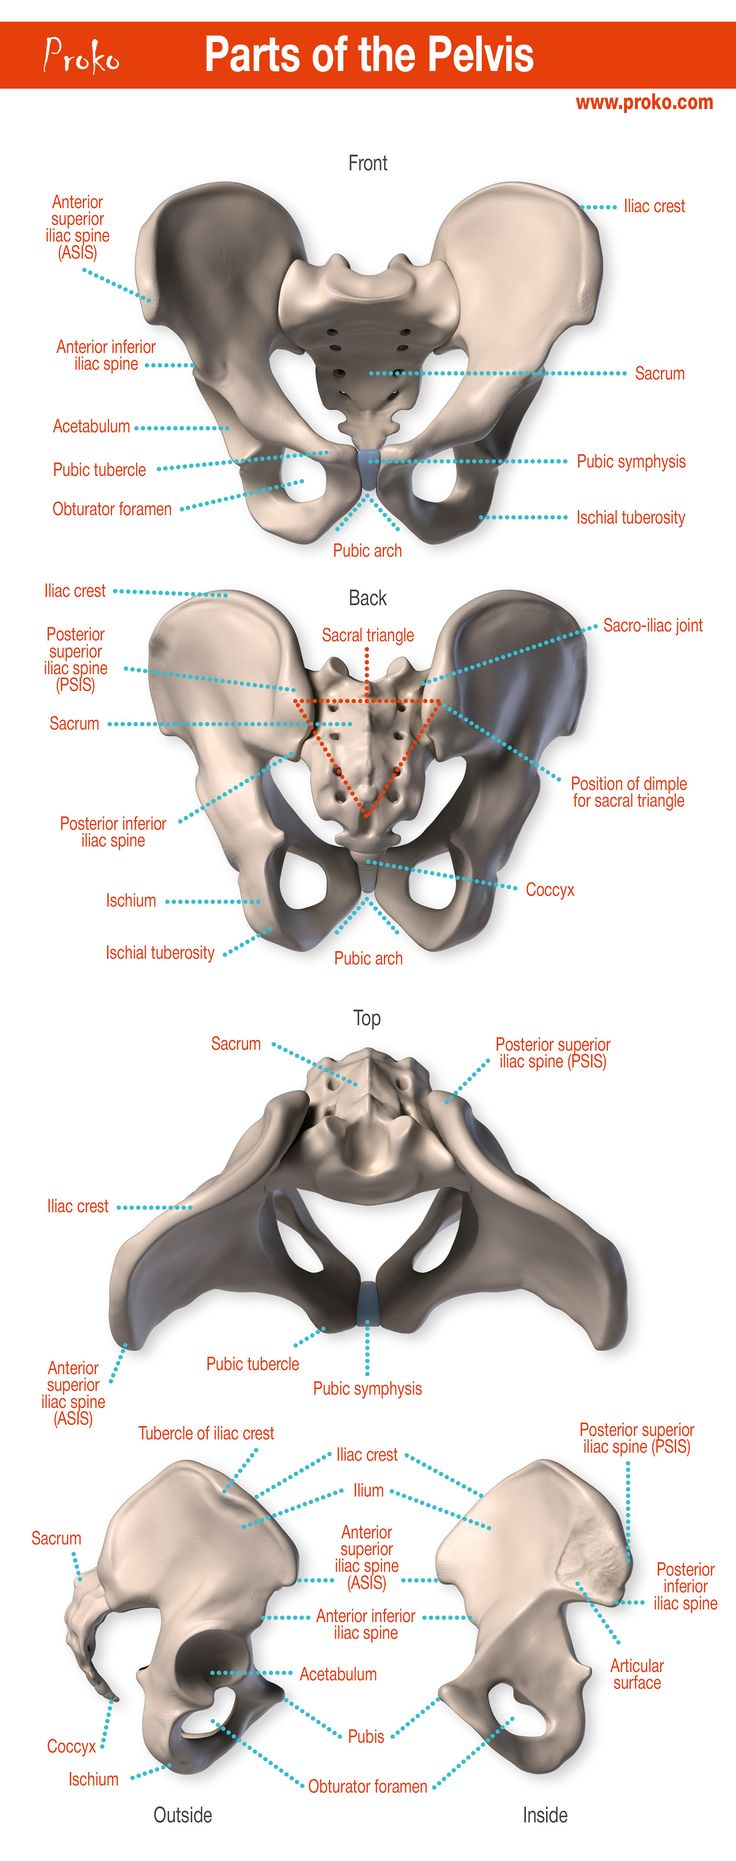 The parts of the pelvis. Click the image to watch The Anatomy of the Pelvis video. #proko #art #anatomy #pelvis #humananatomy #tutorial